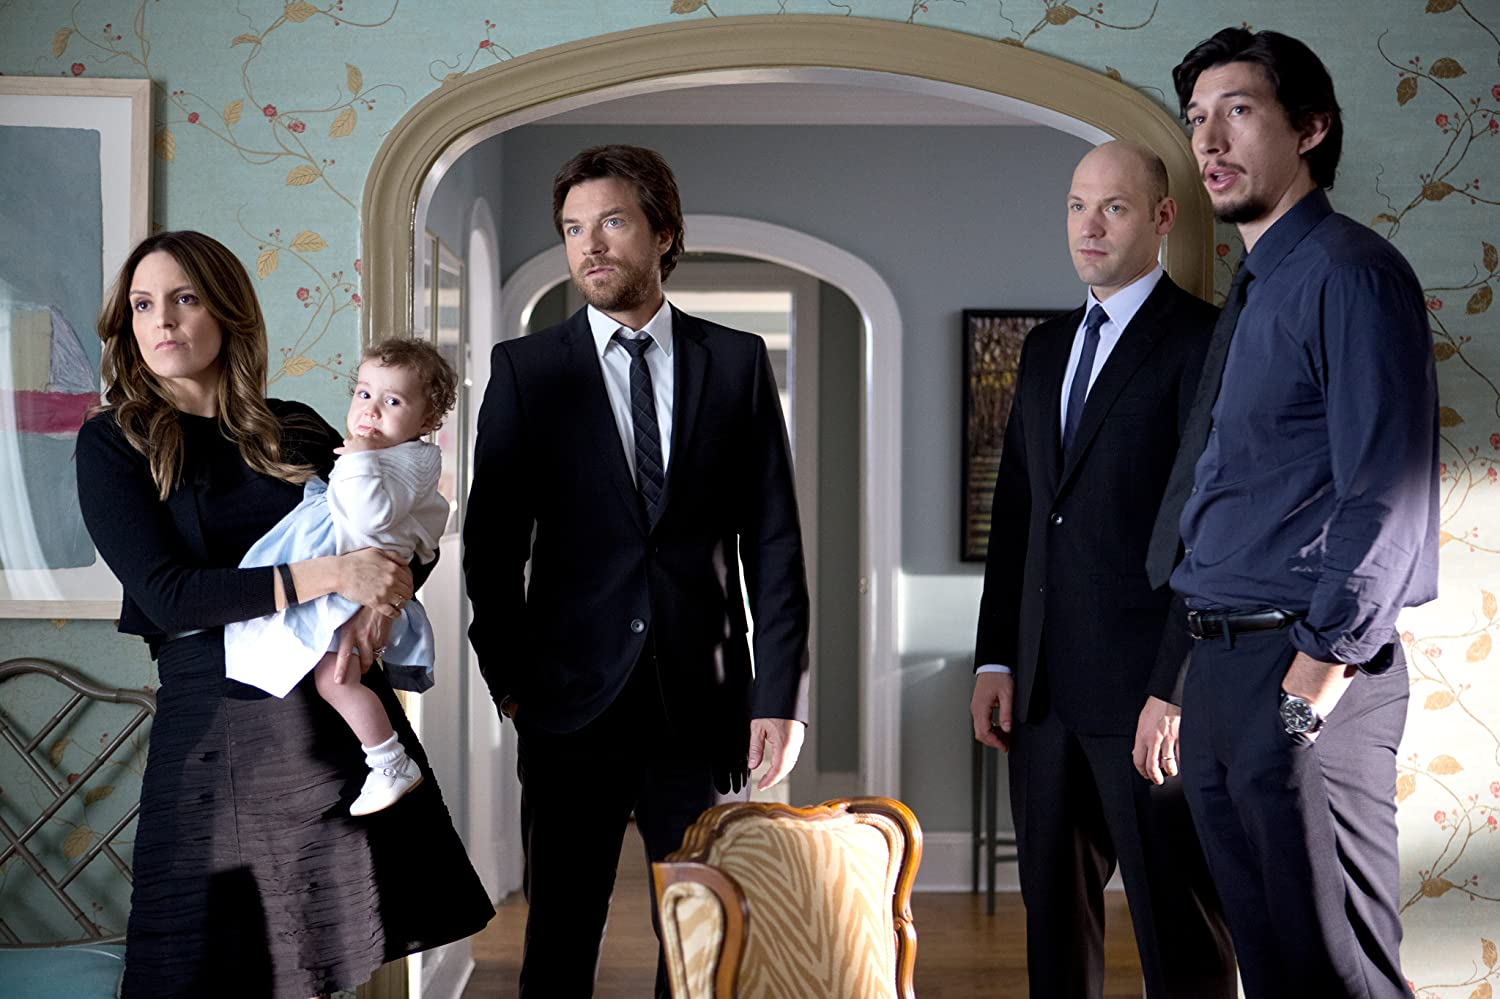 Jason Bateman, Tina Fey, Corey Stoll, and Adam Driver in This Is Where I Leave You (2014)